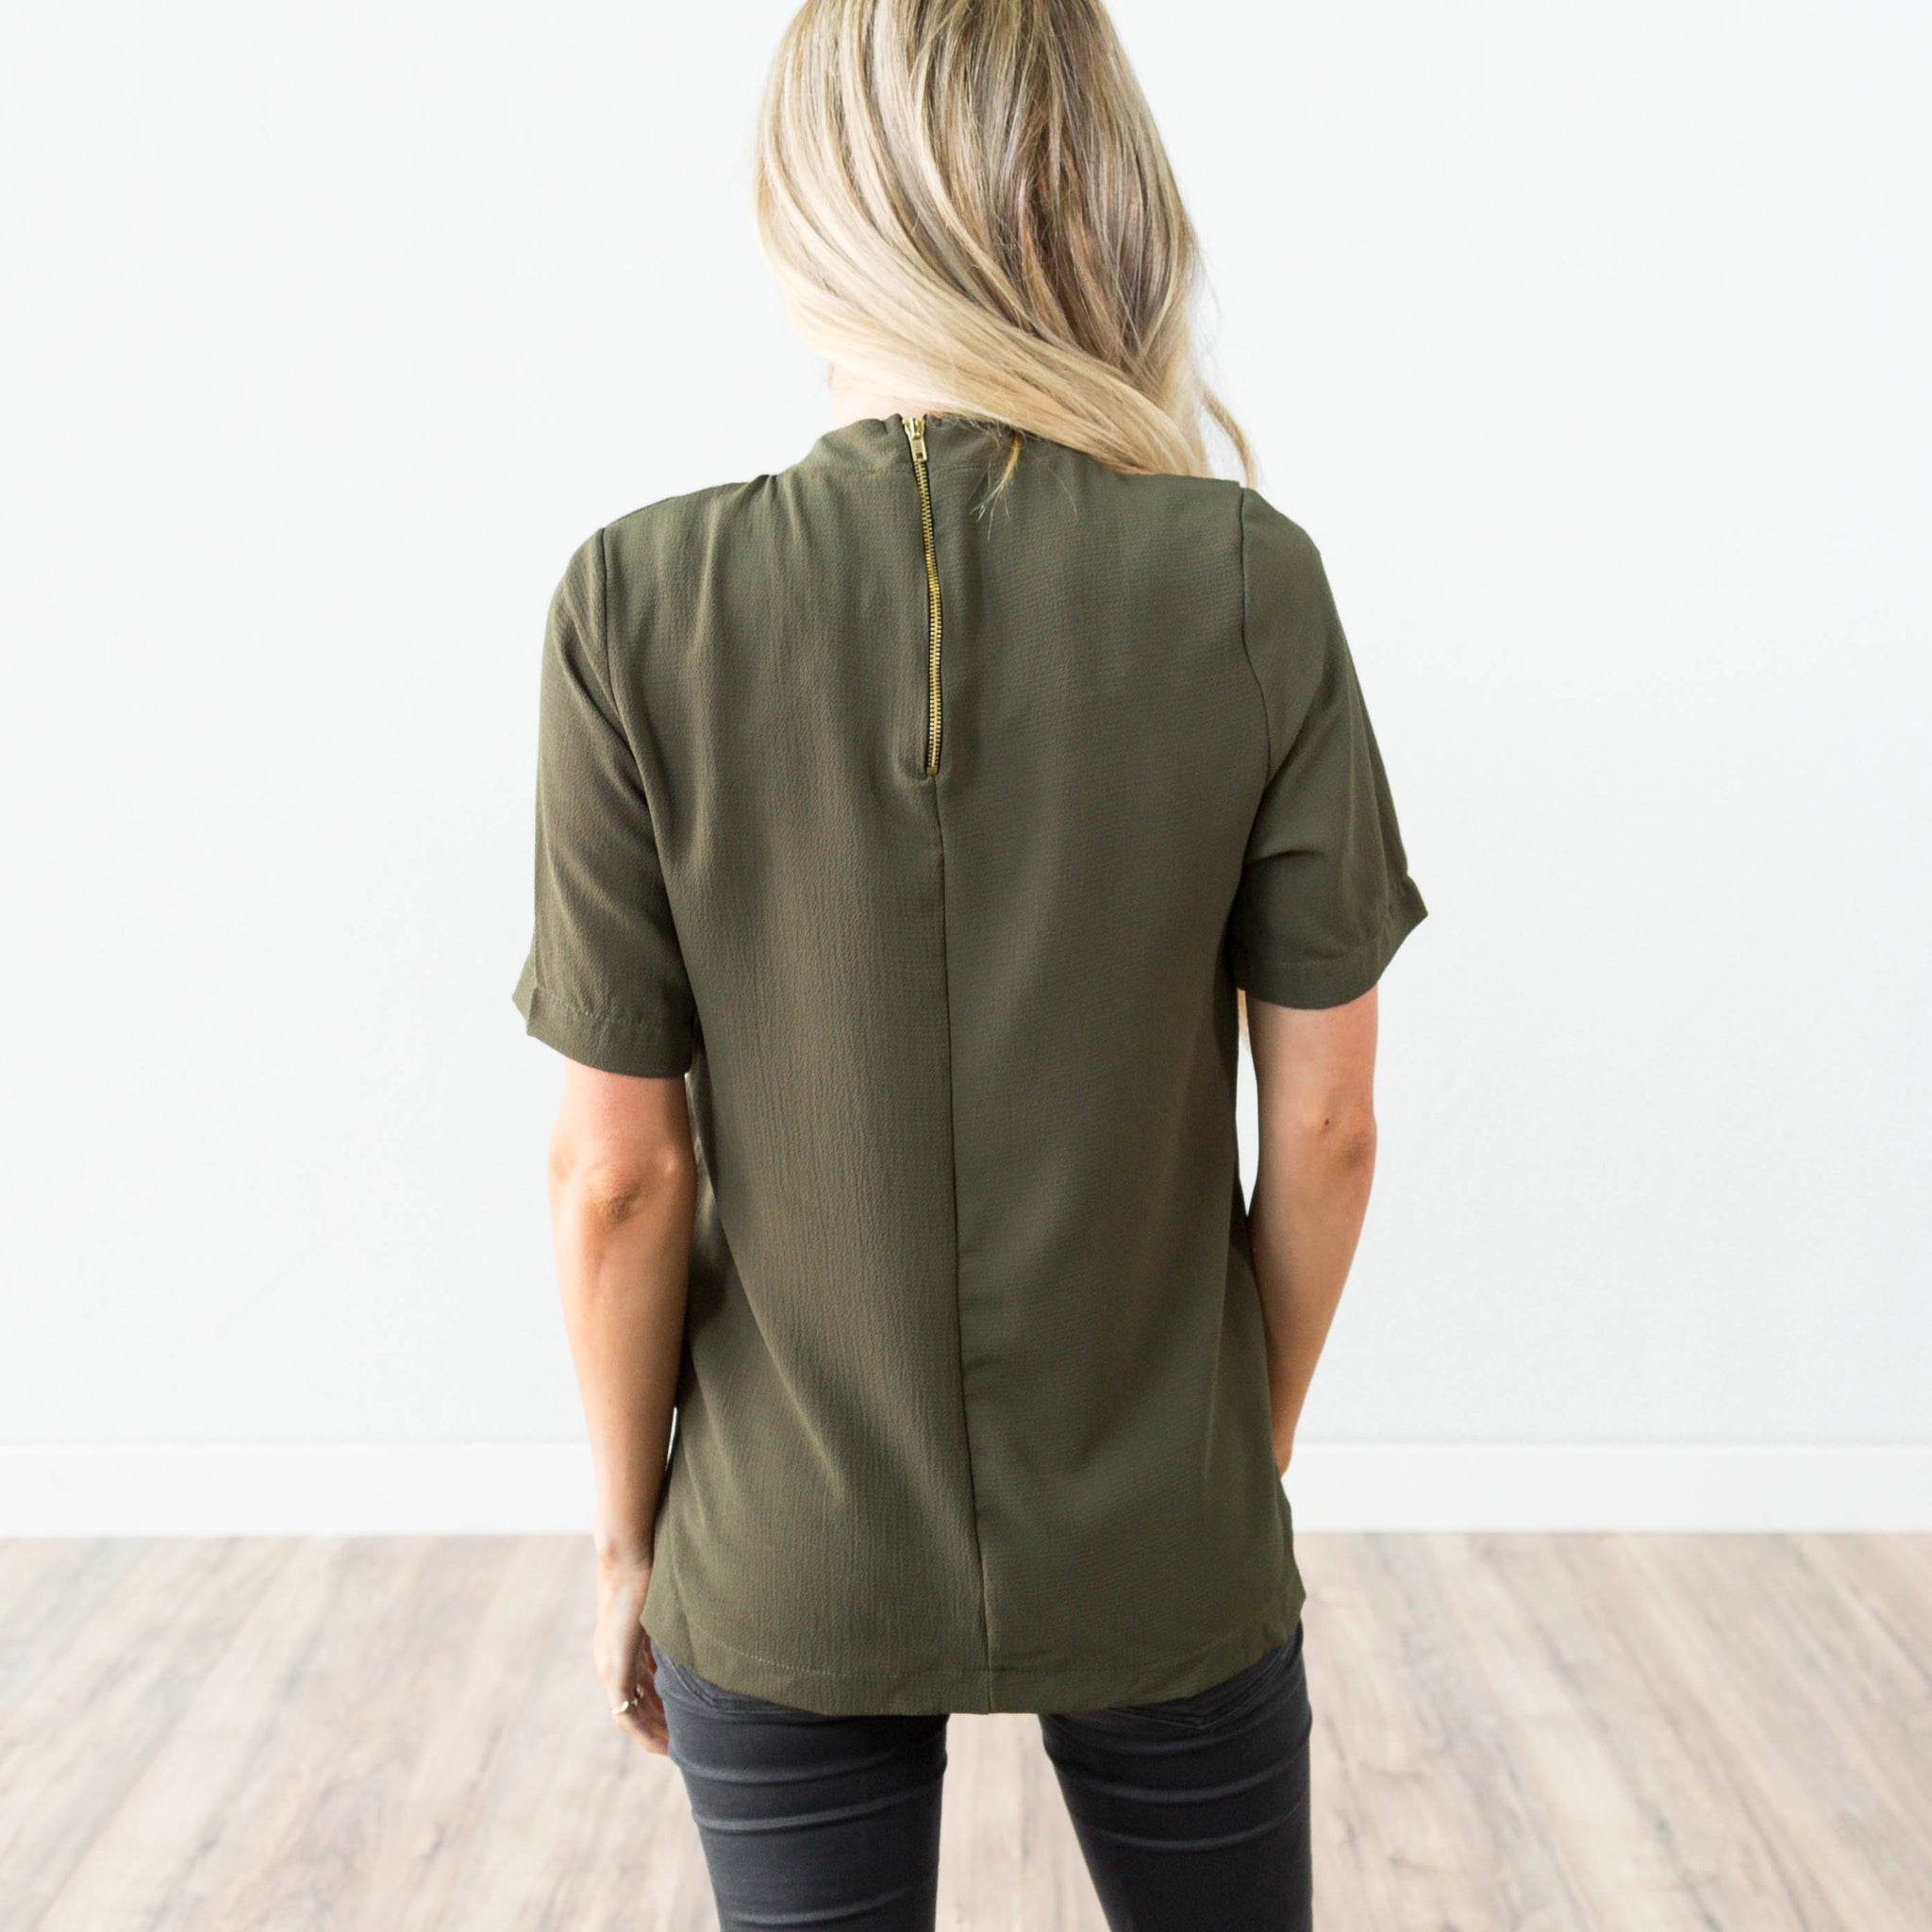 Sophie Top in Olive